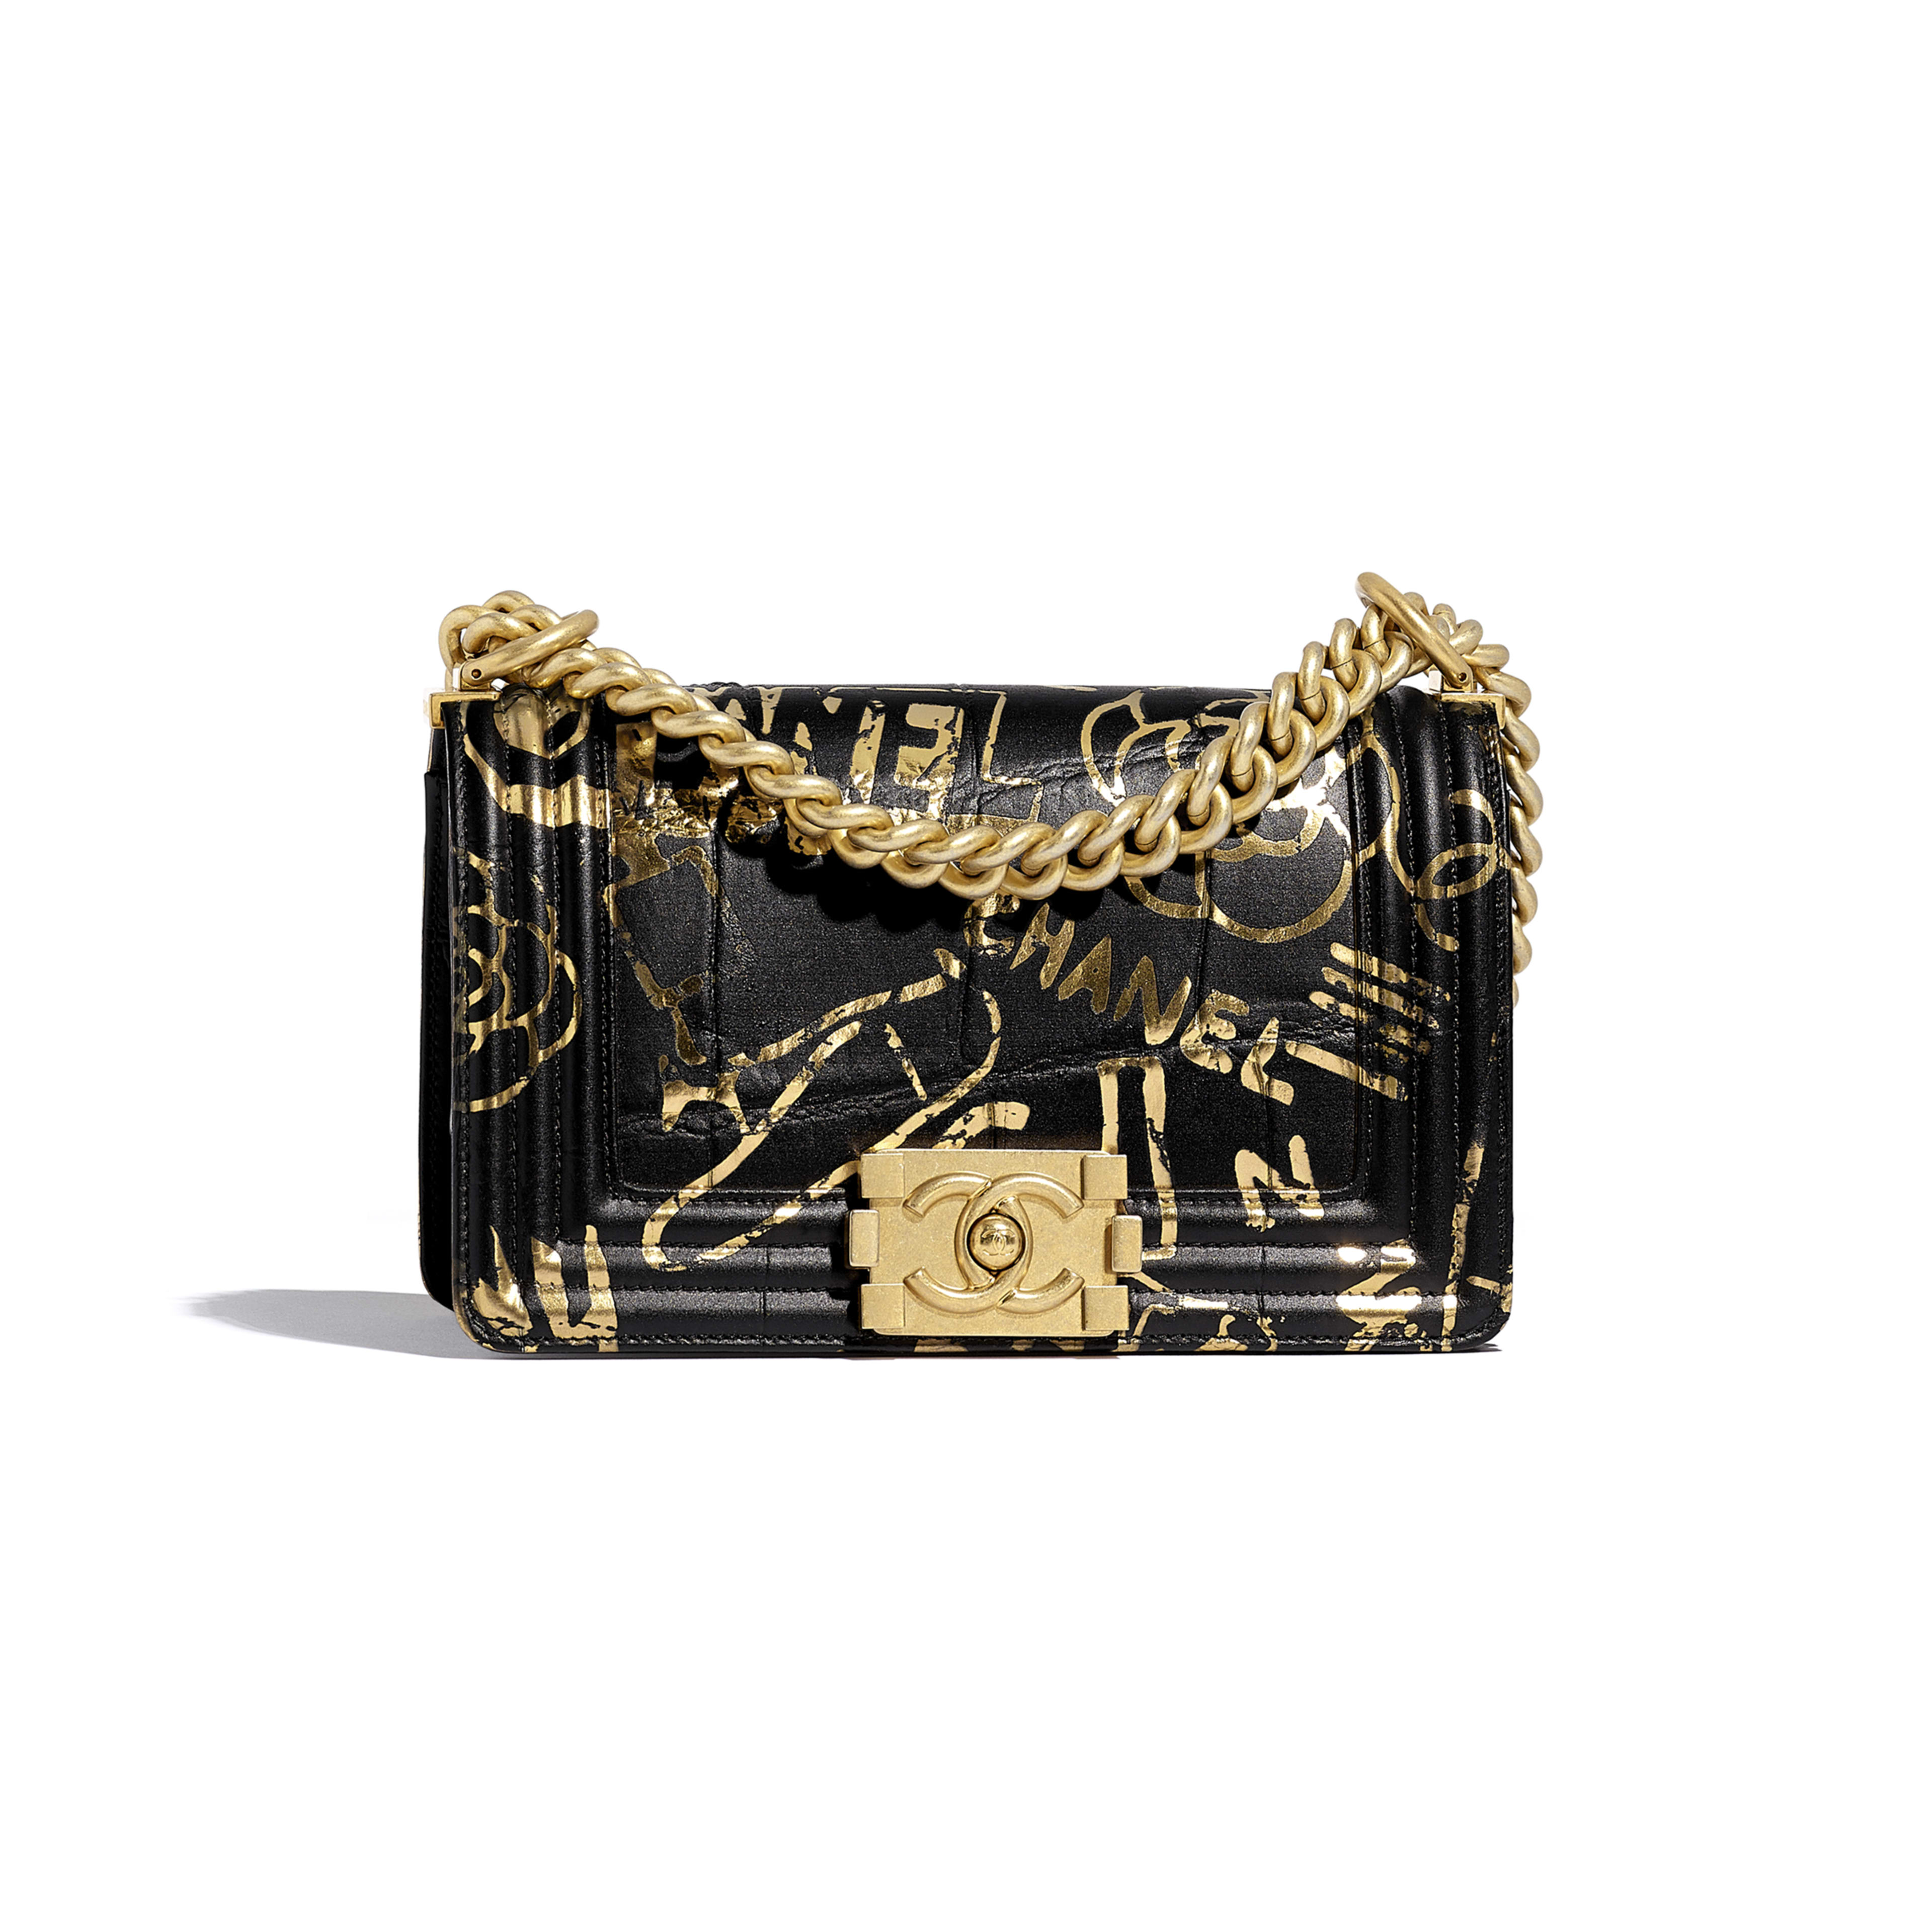 Small BOY CHANEL Handbag - Black & Gold - Crocodile Embossed Printed Leather & Gold-Tone Metal - Default view - see full sized version